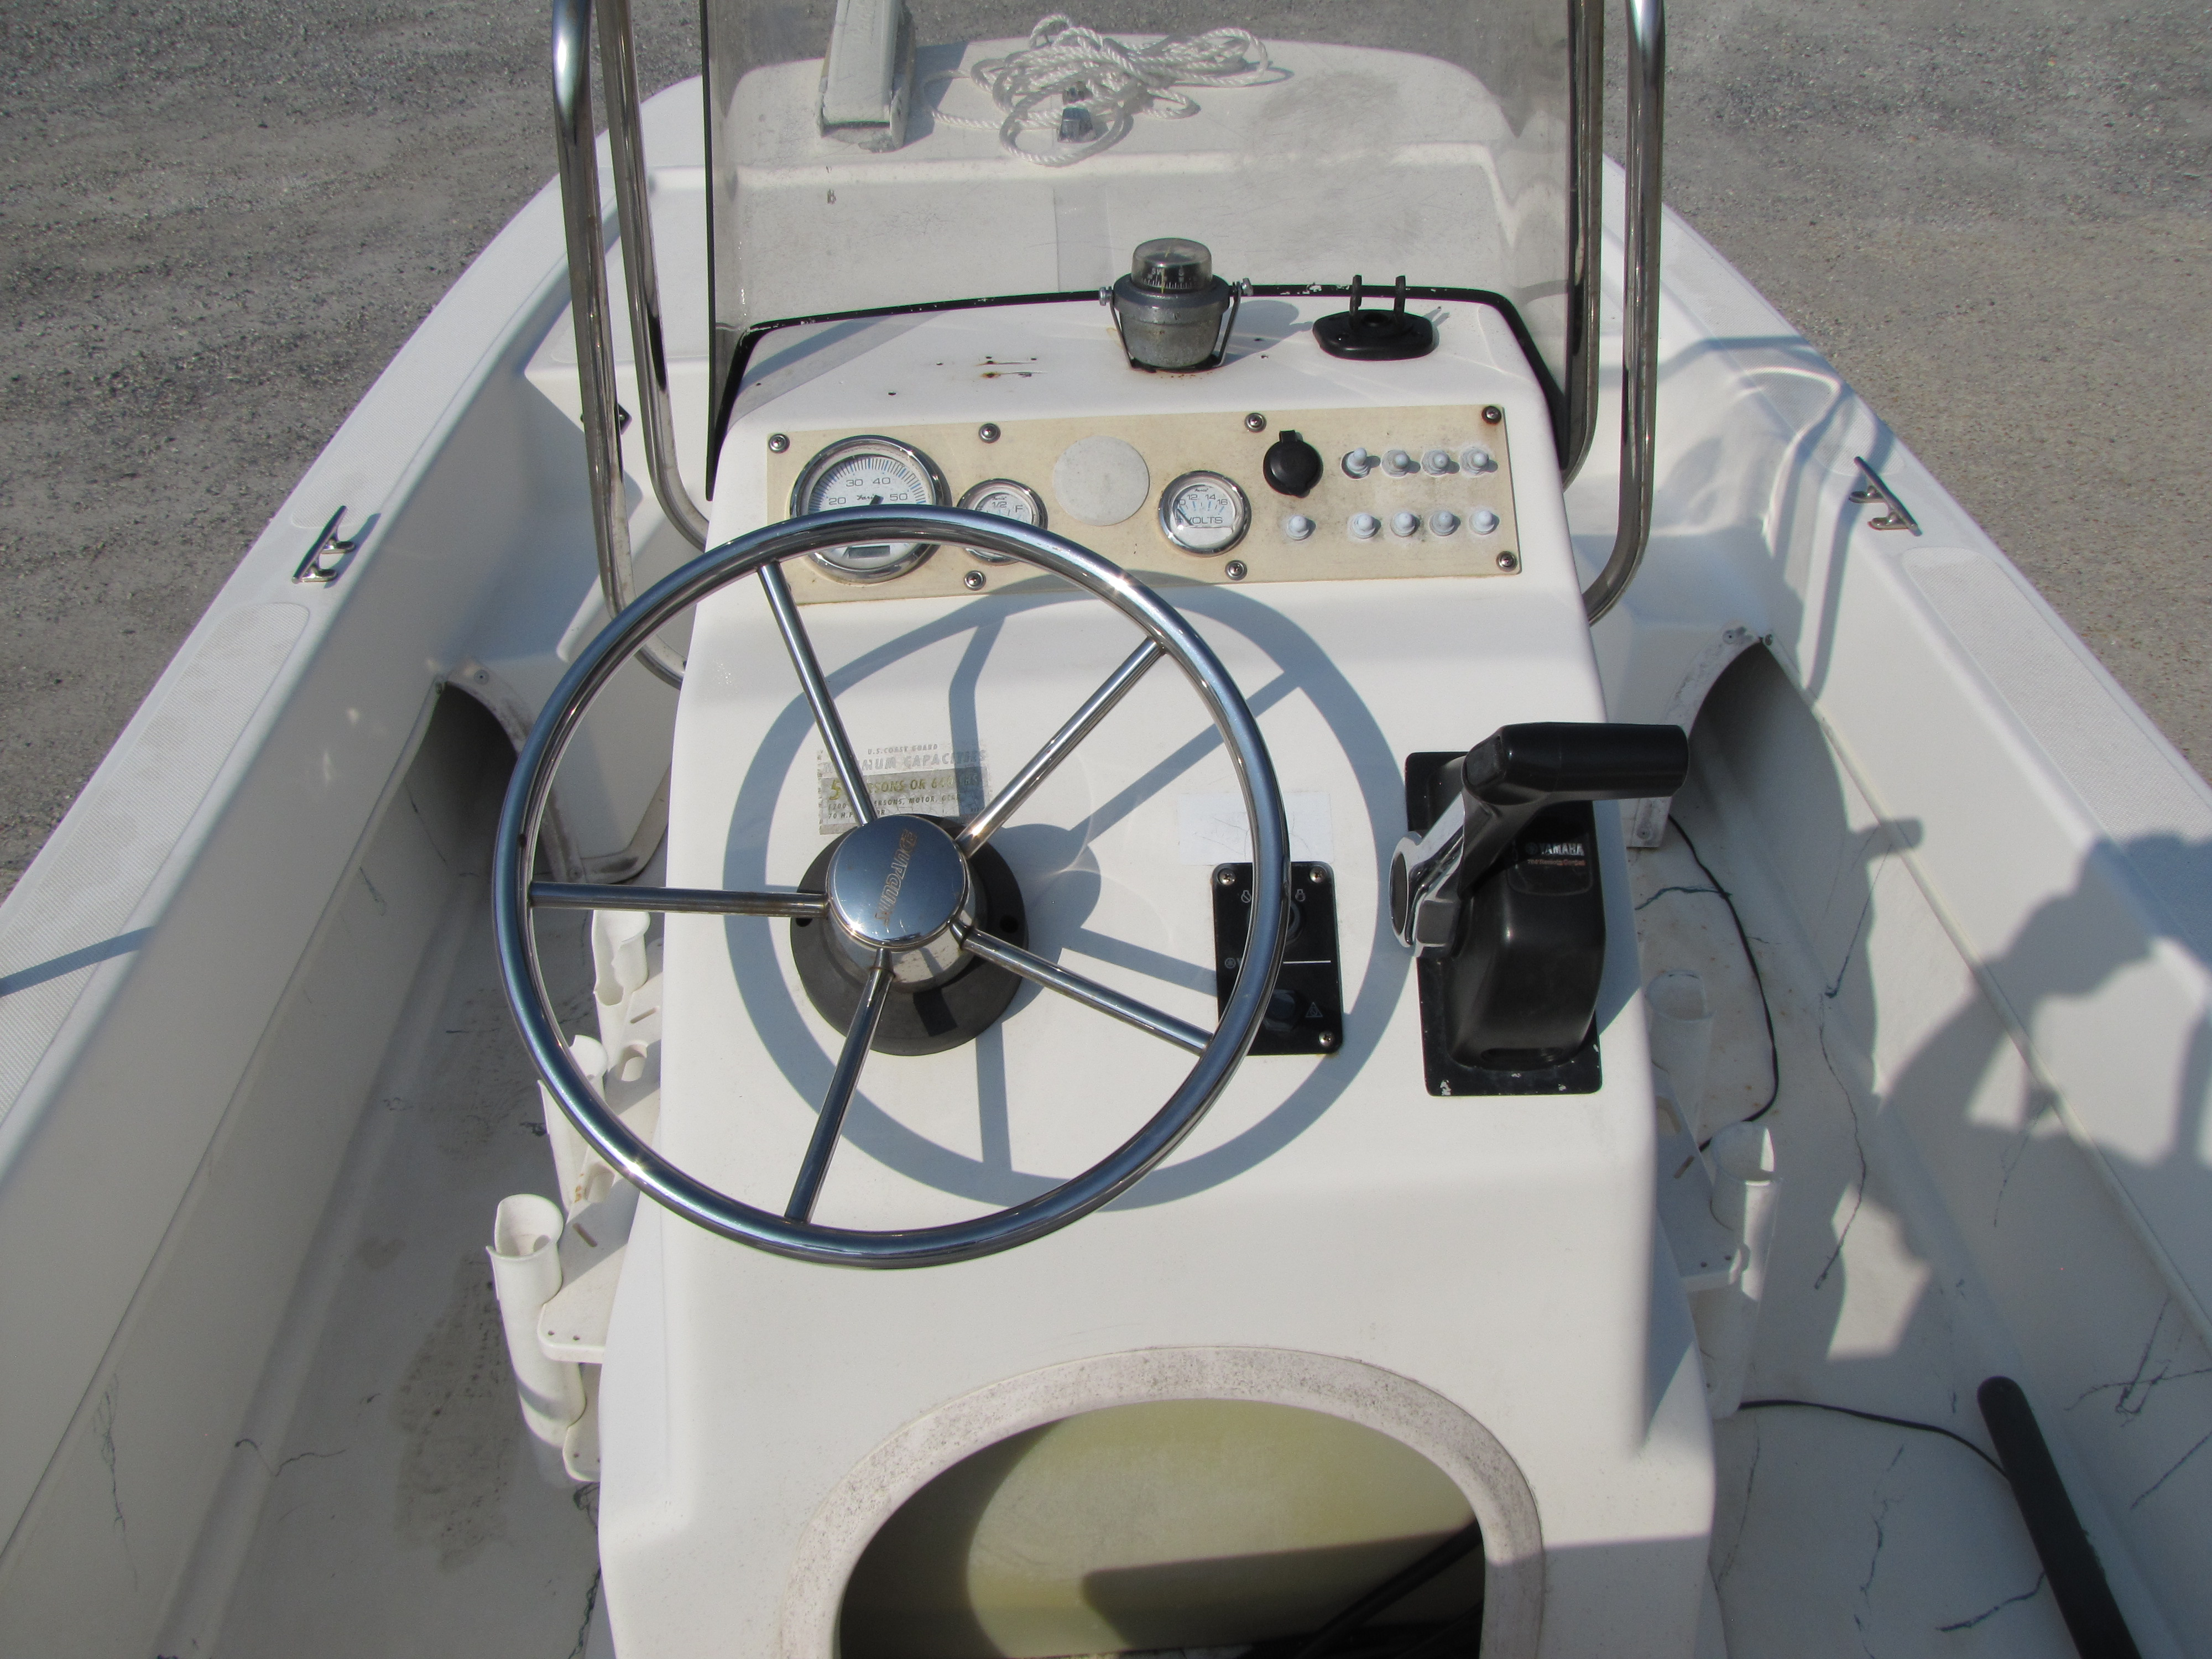 2009 Sundance boat for sale, model of the boat is 17 cc & Image # 10 of 15